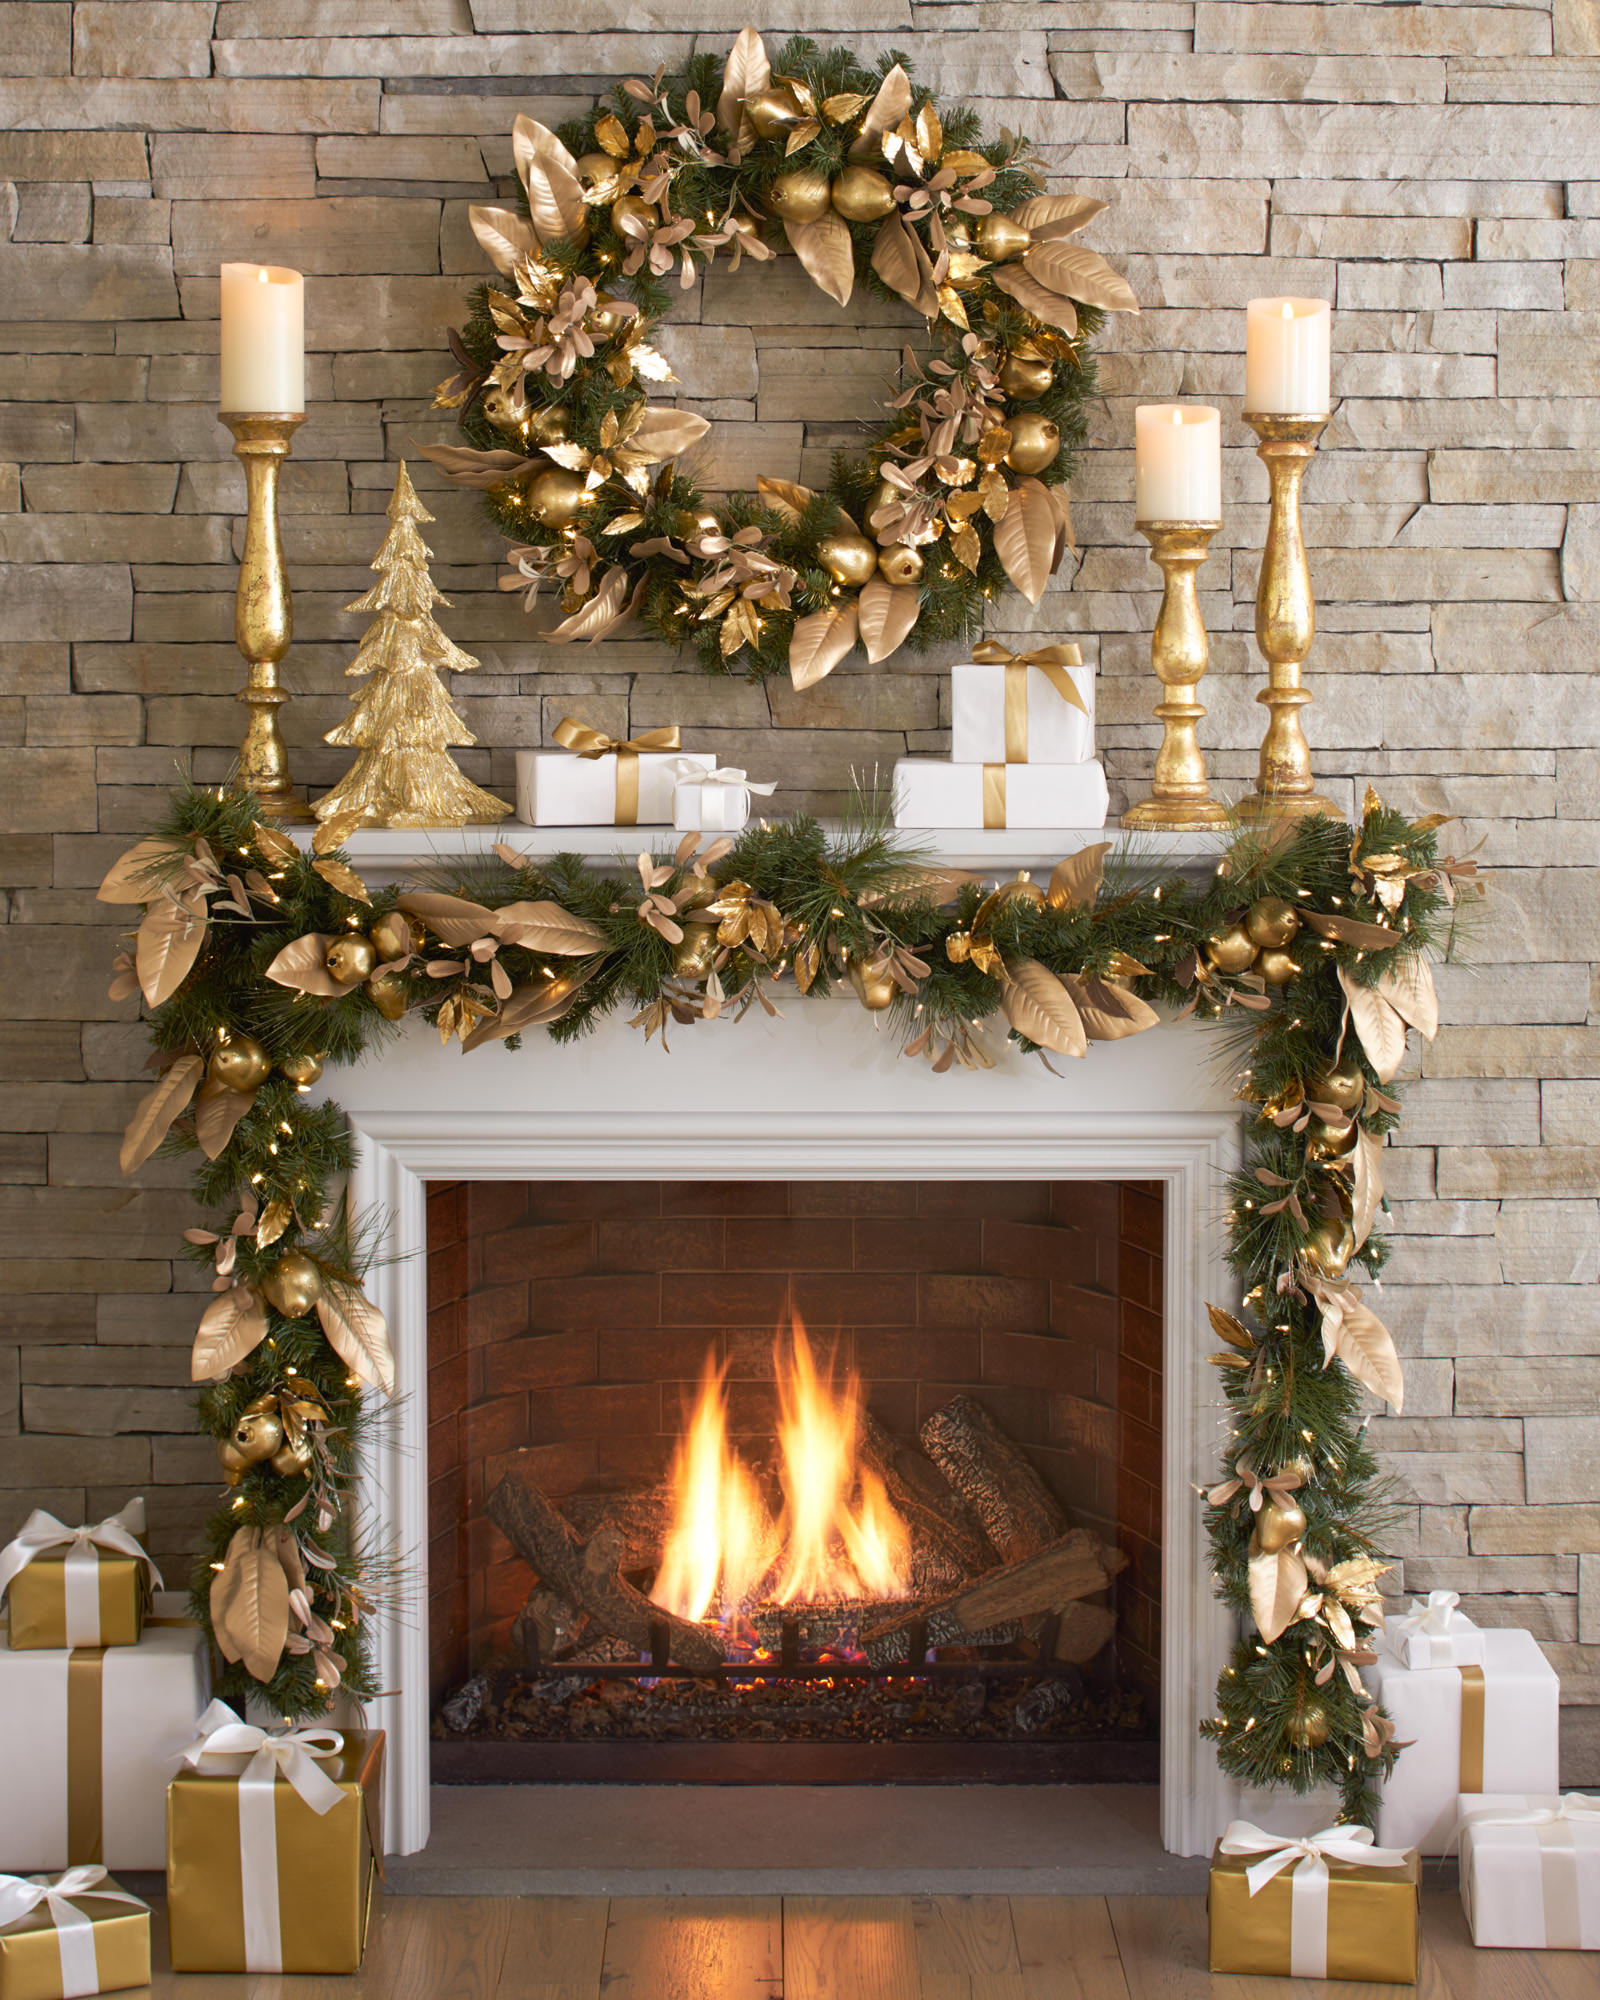 decorate with presents - How To Decorate A Fireplace Mantel For Christmas